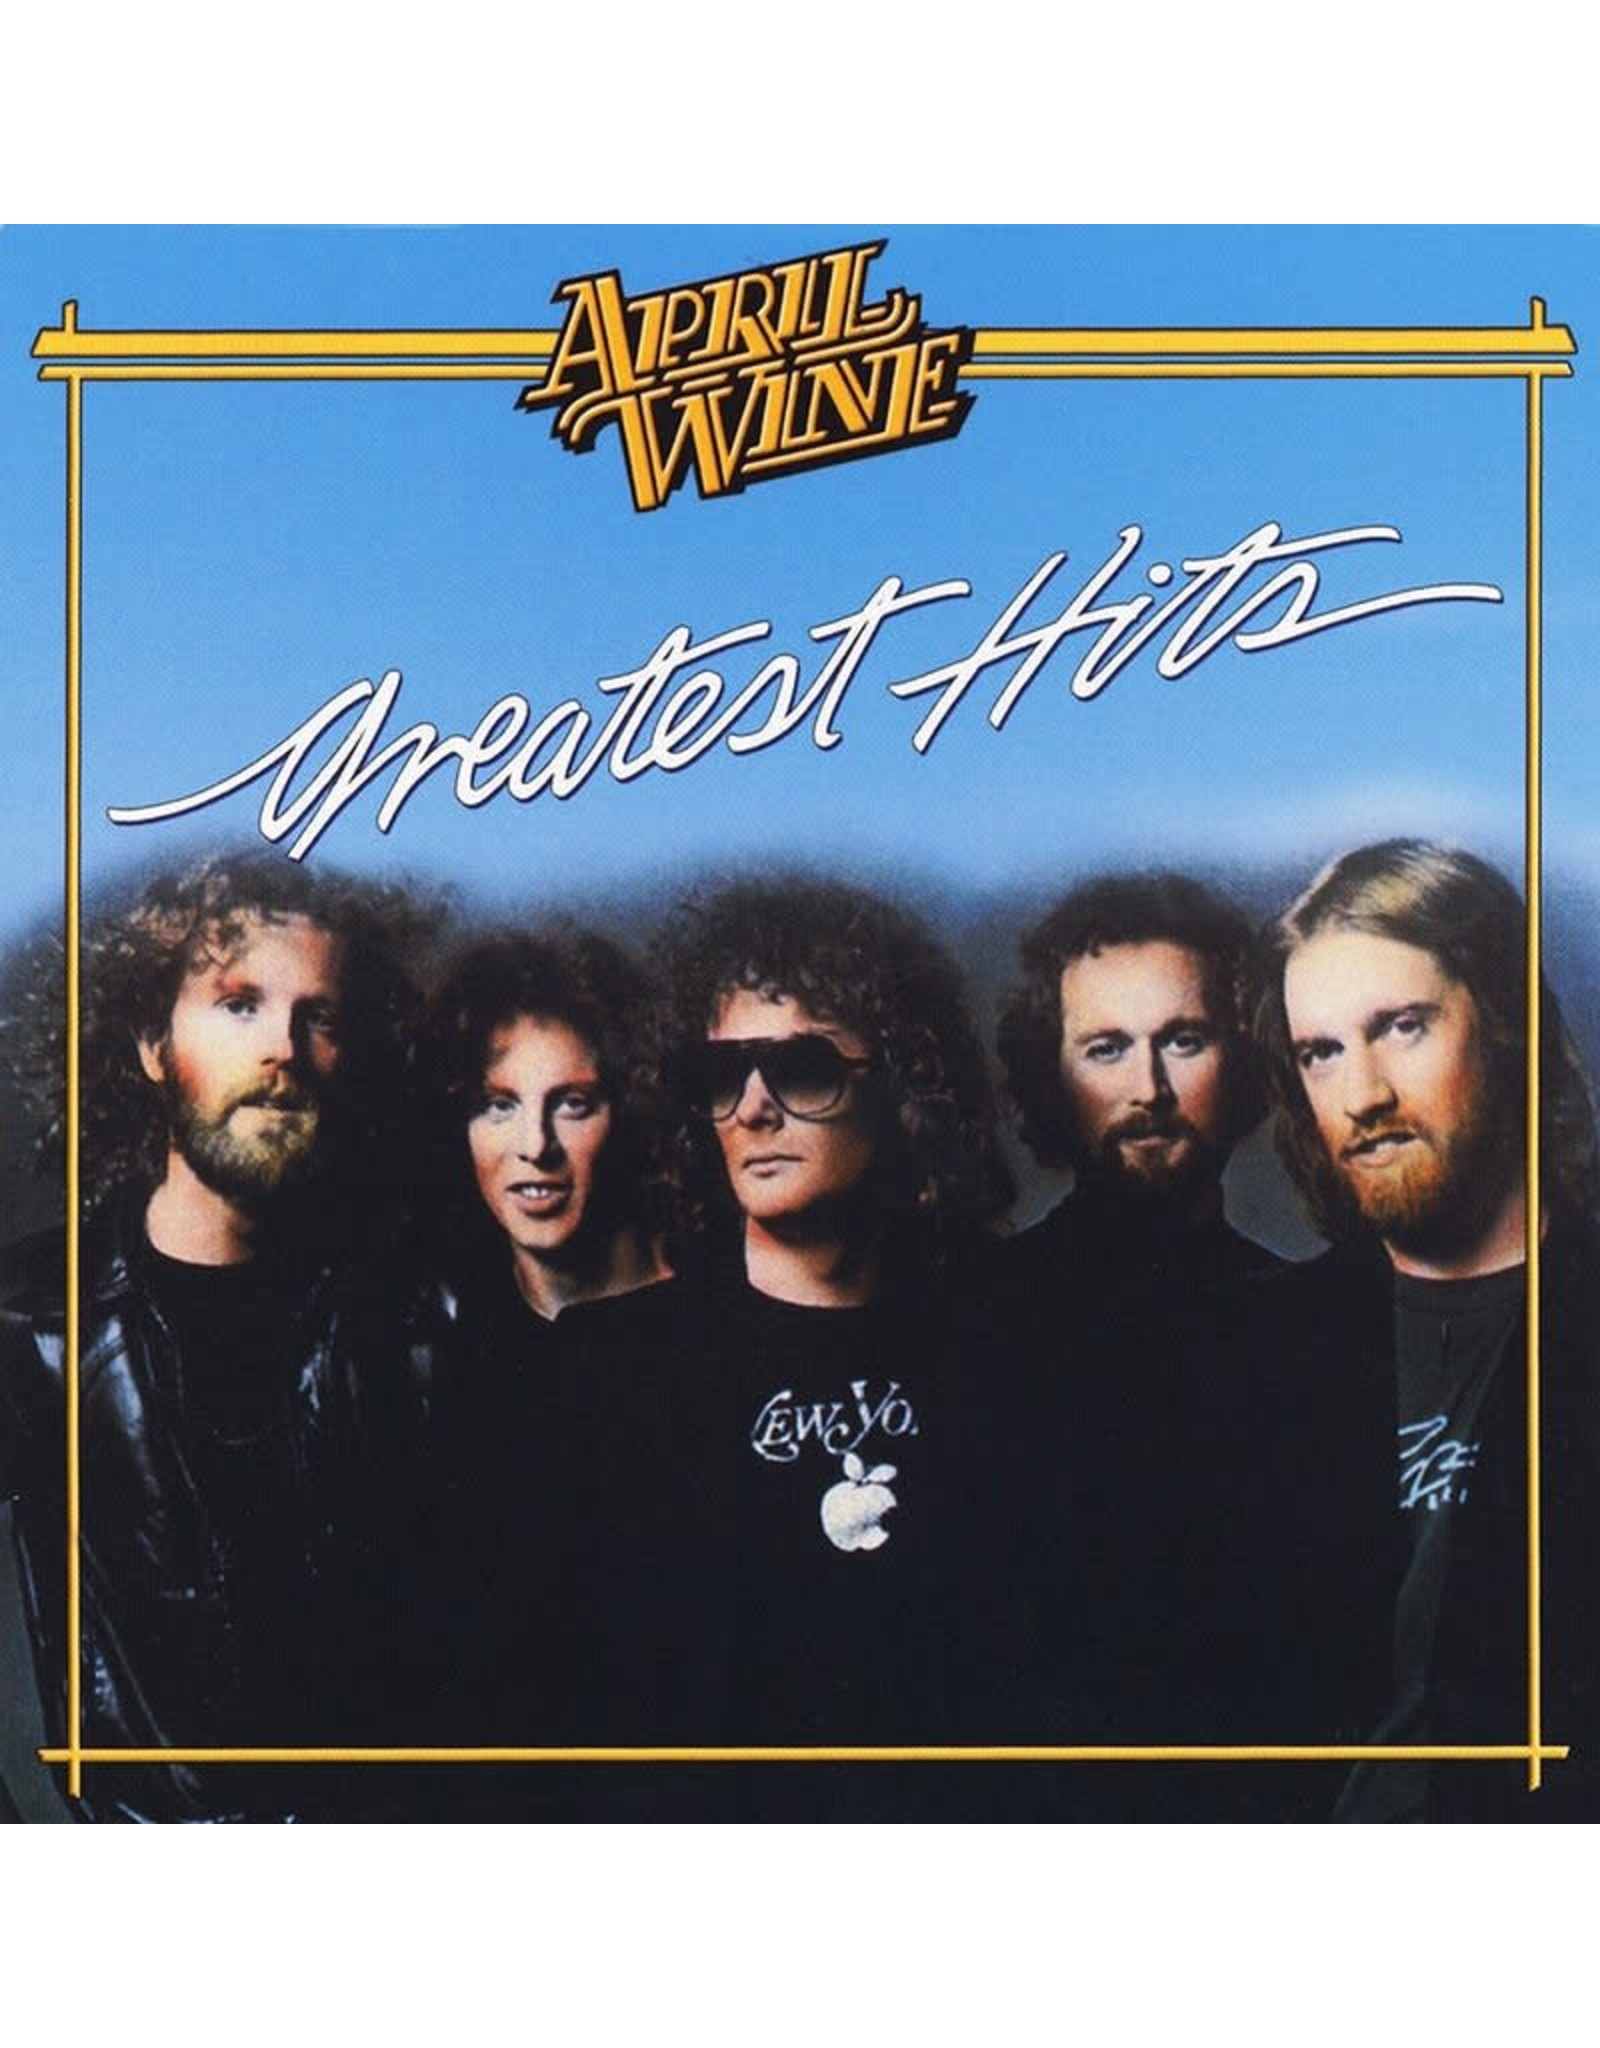 April Wine - Greatest Hits (Exclusive Opaque Blue Vinyl)